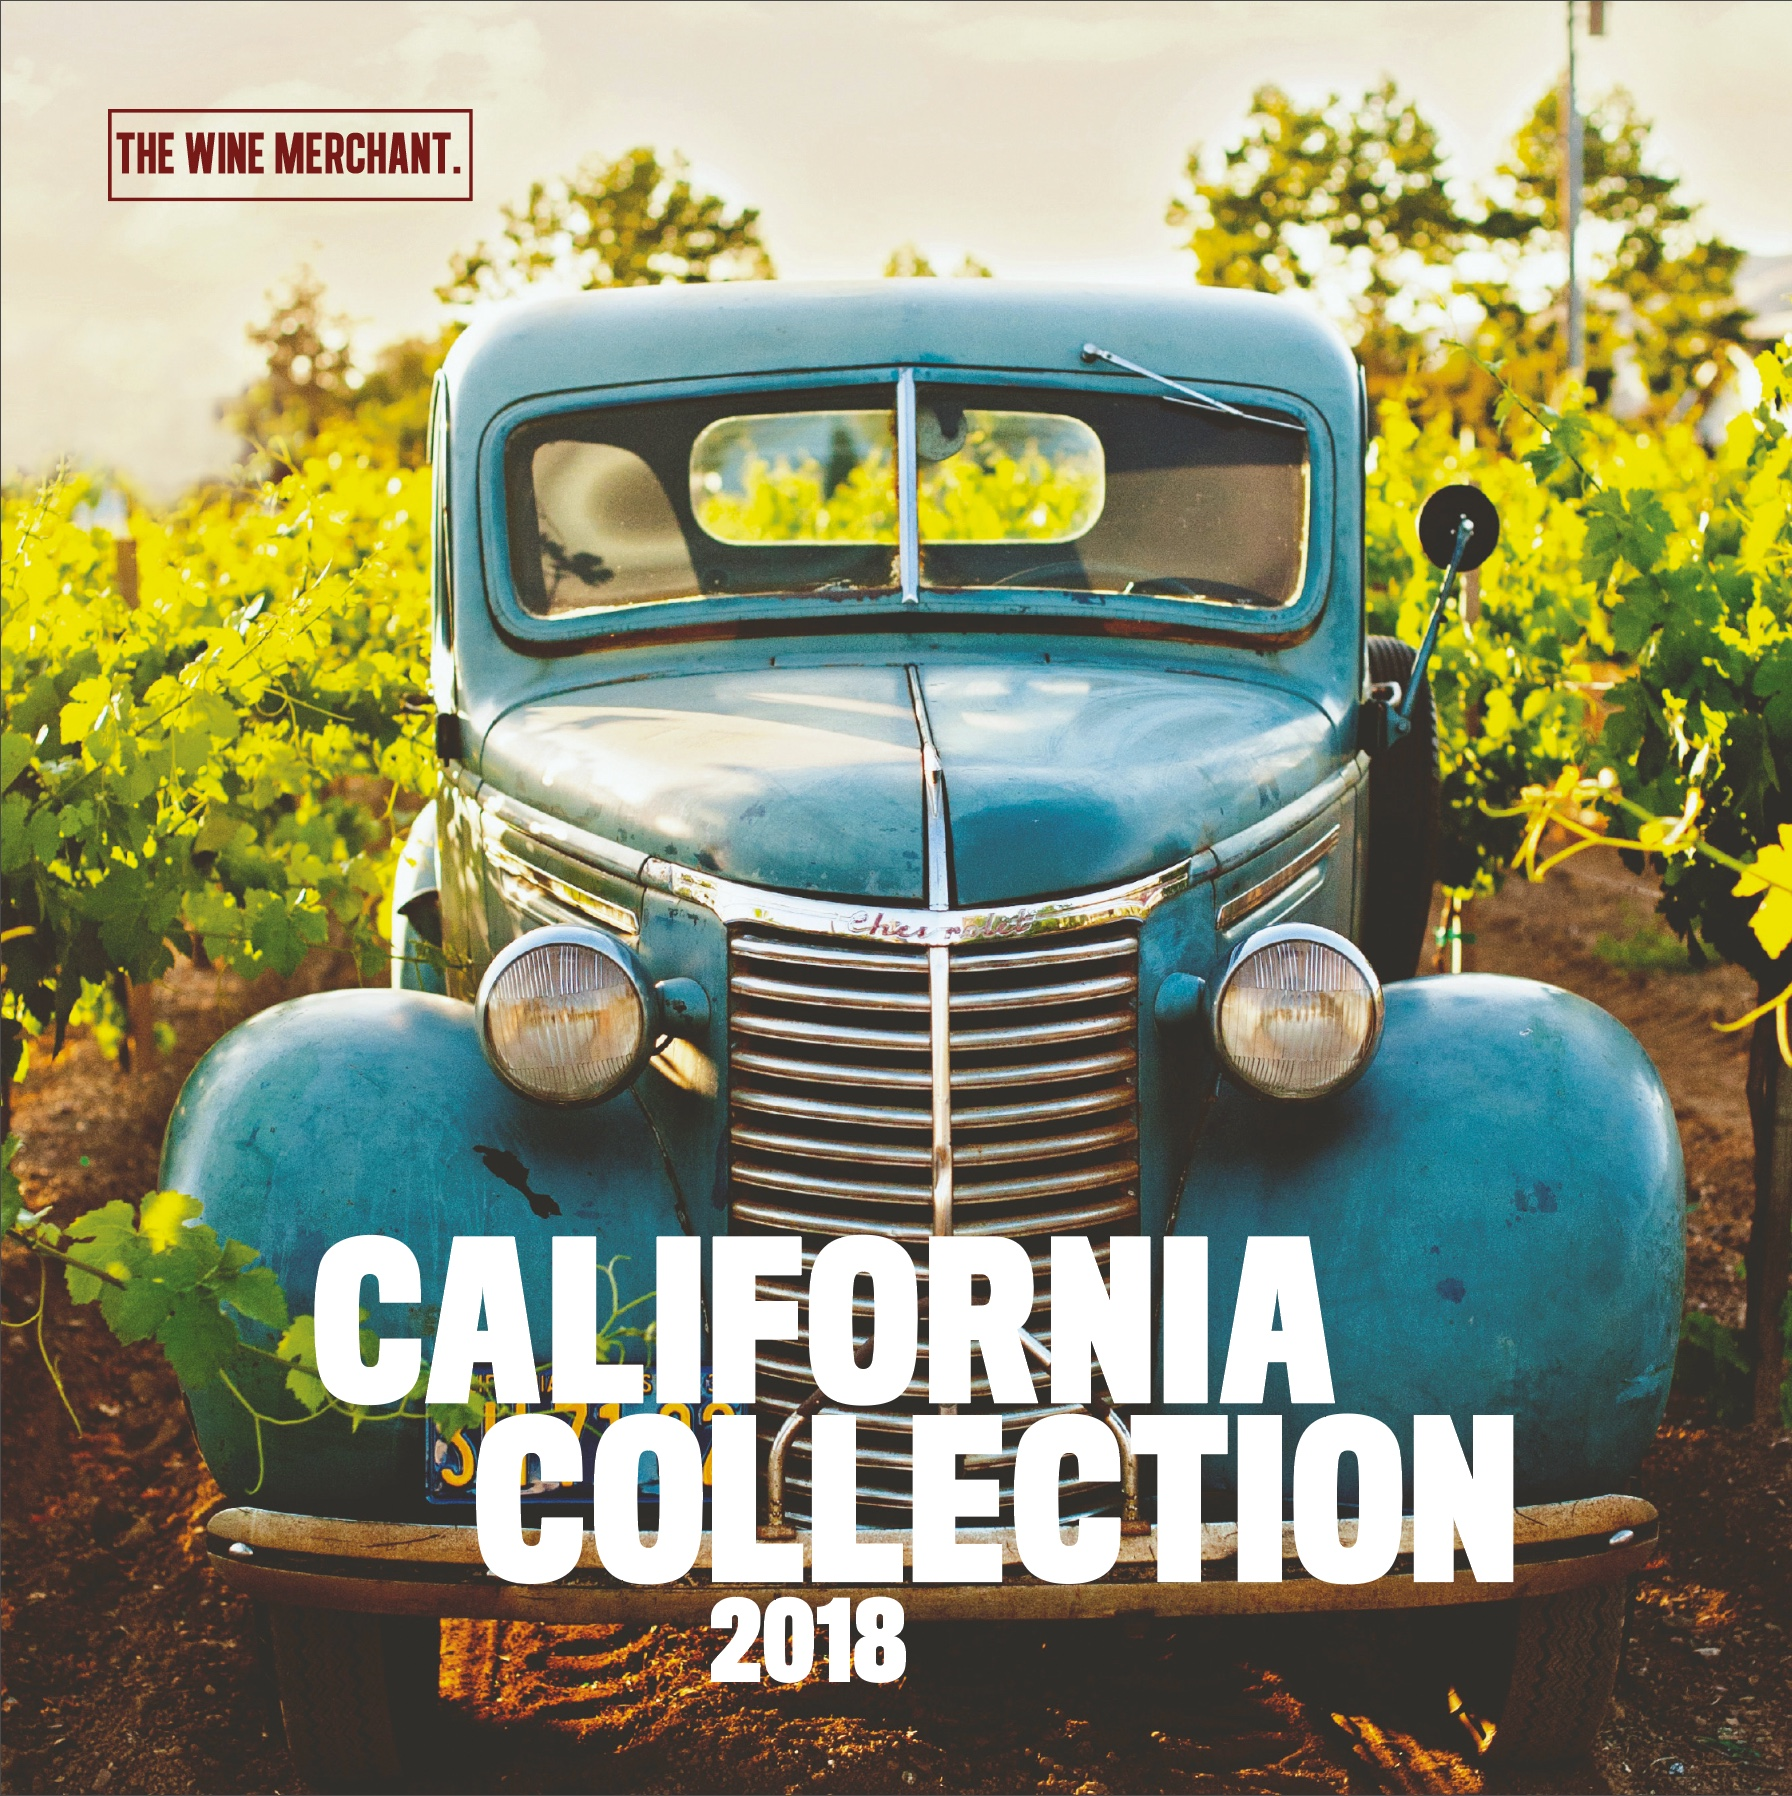 The Wine Merchant California Collection 2018